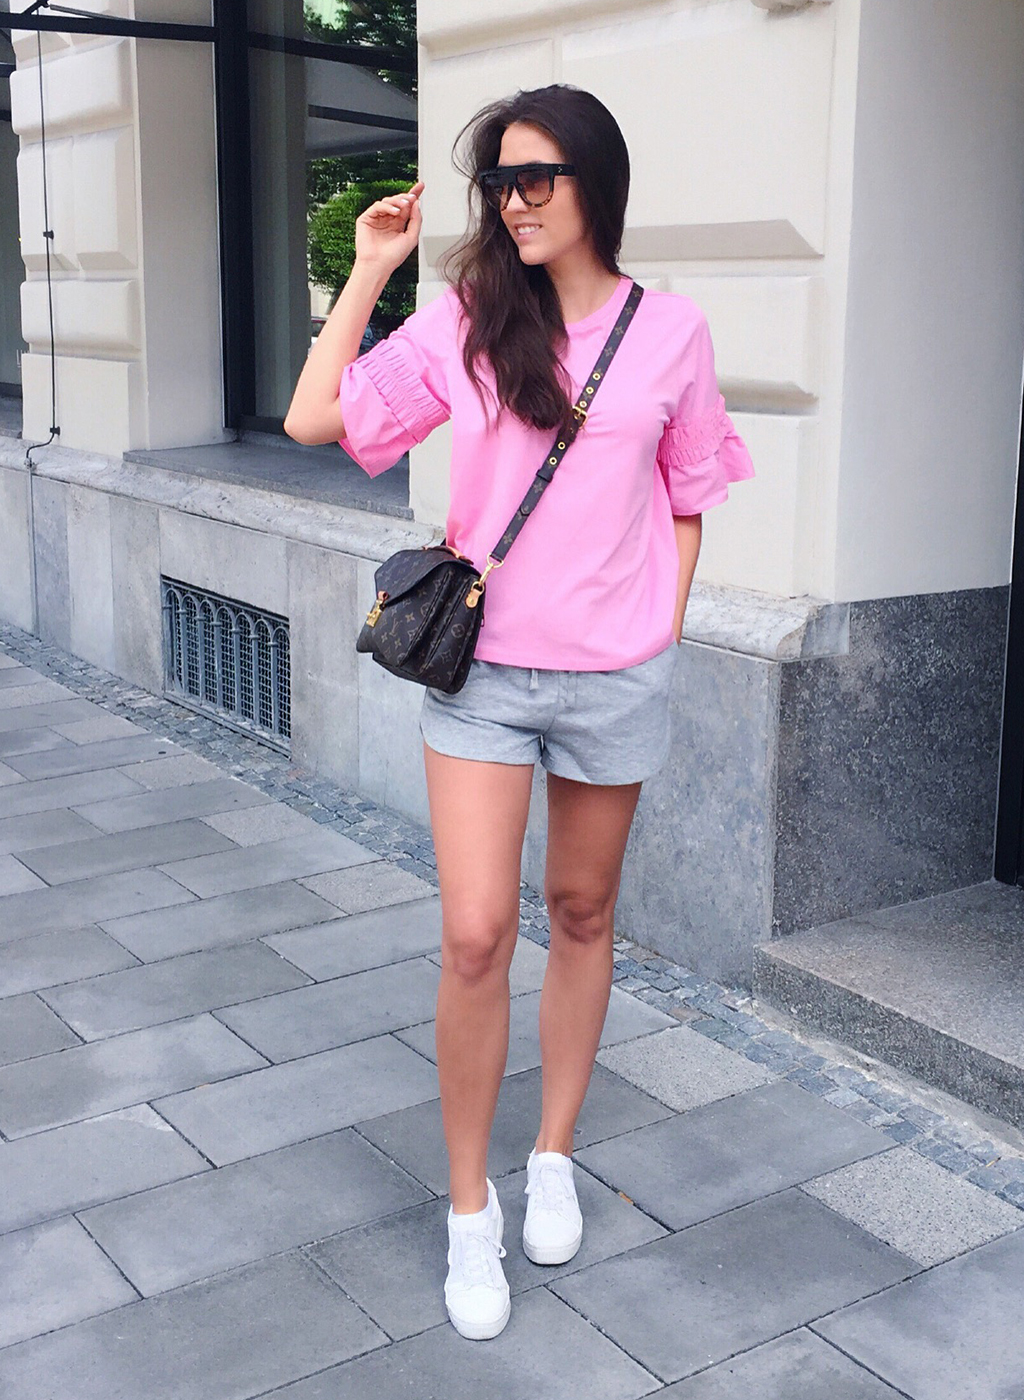 Graue Short pinkes Shirt Sommer Look